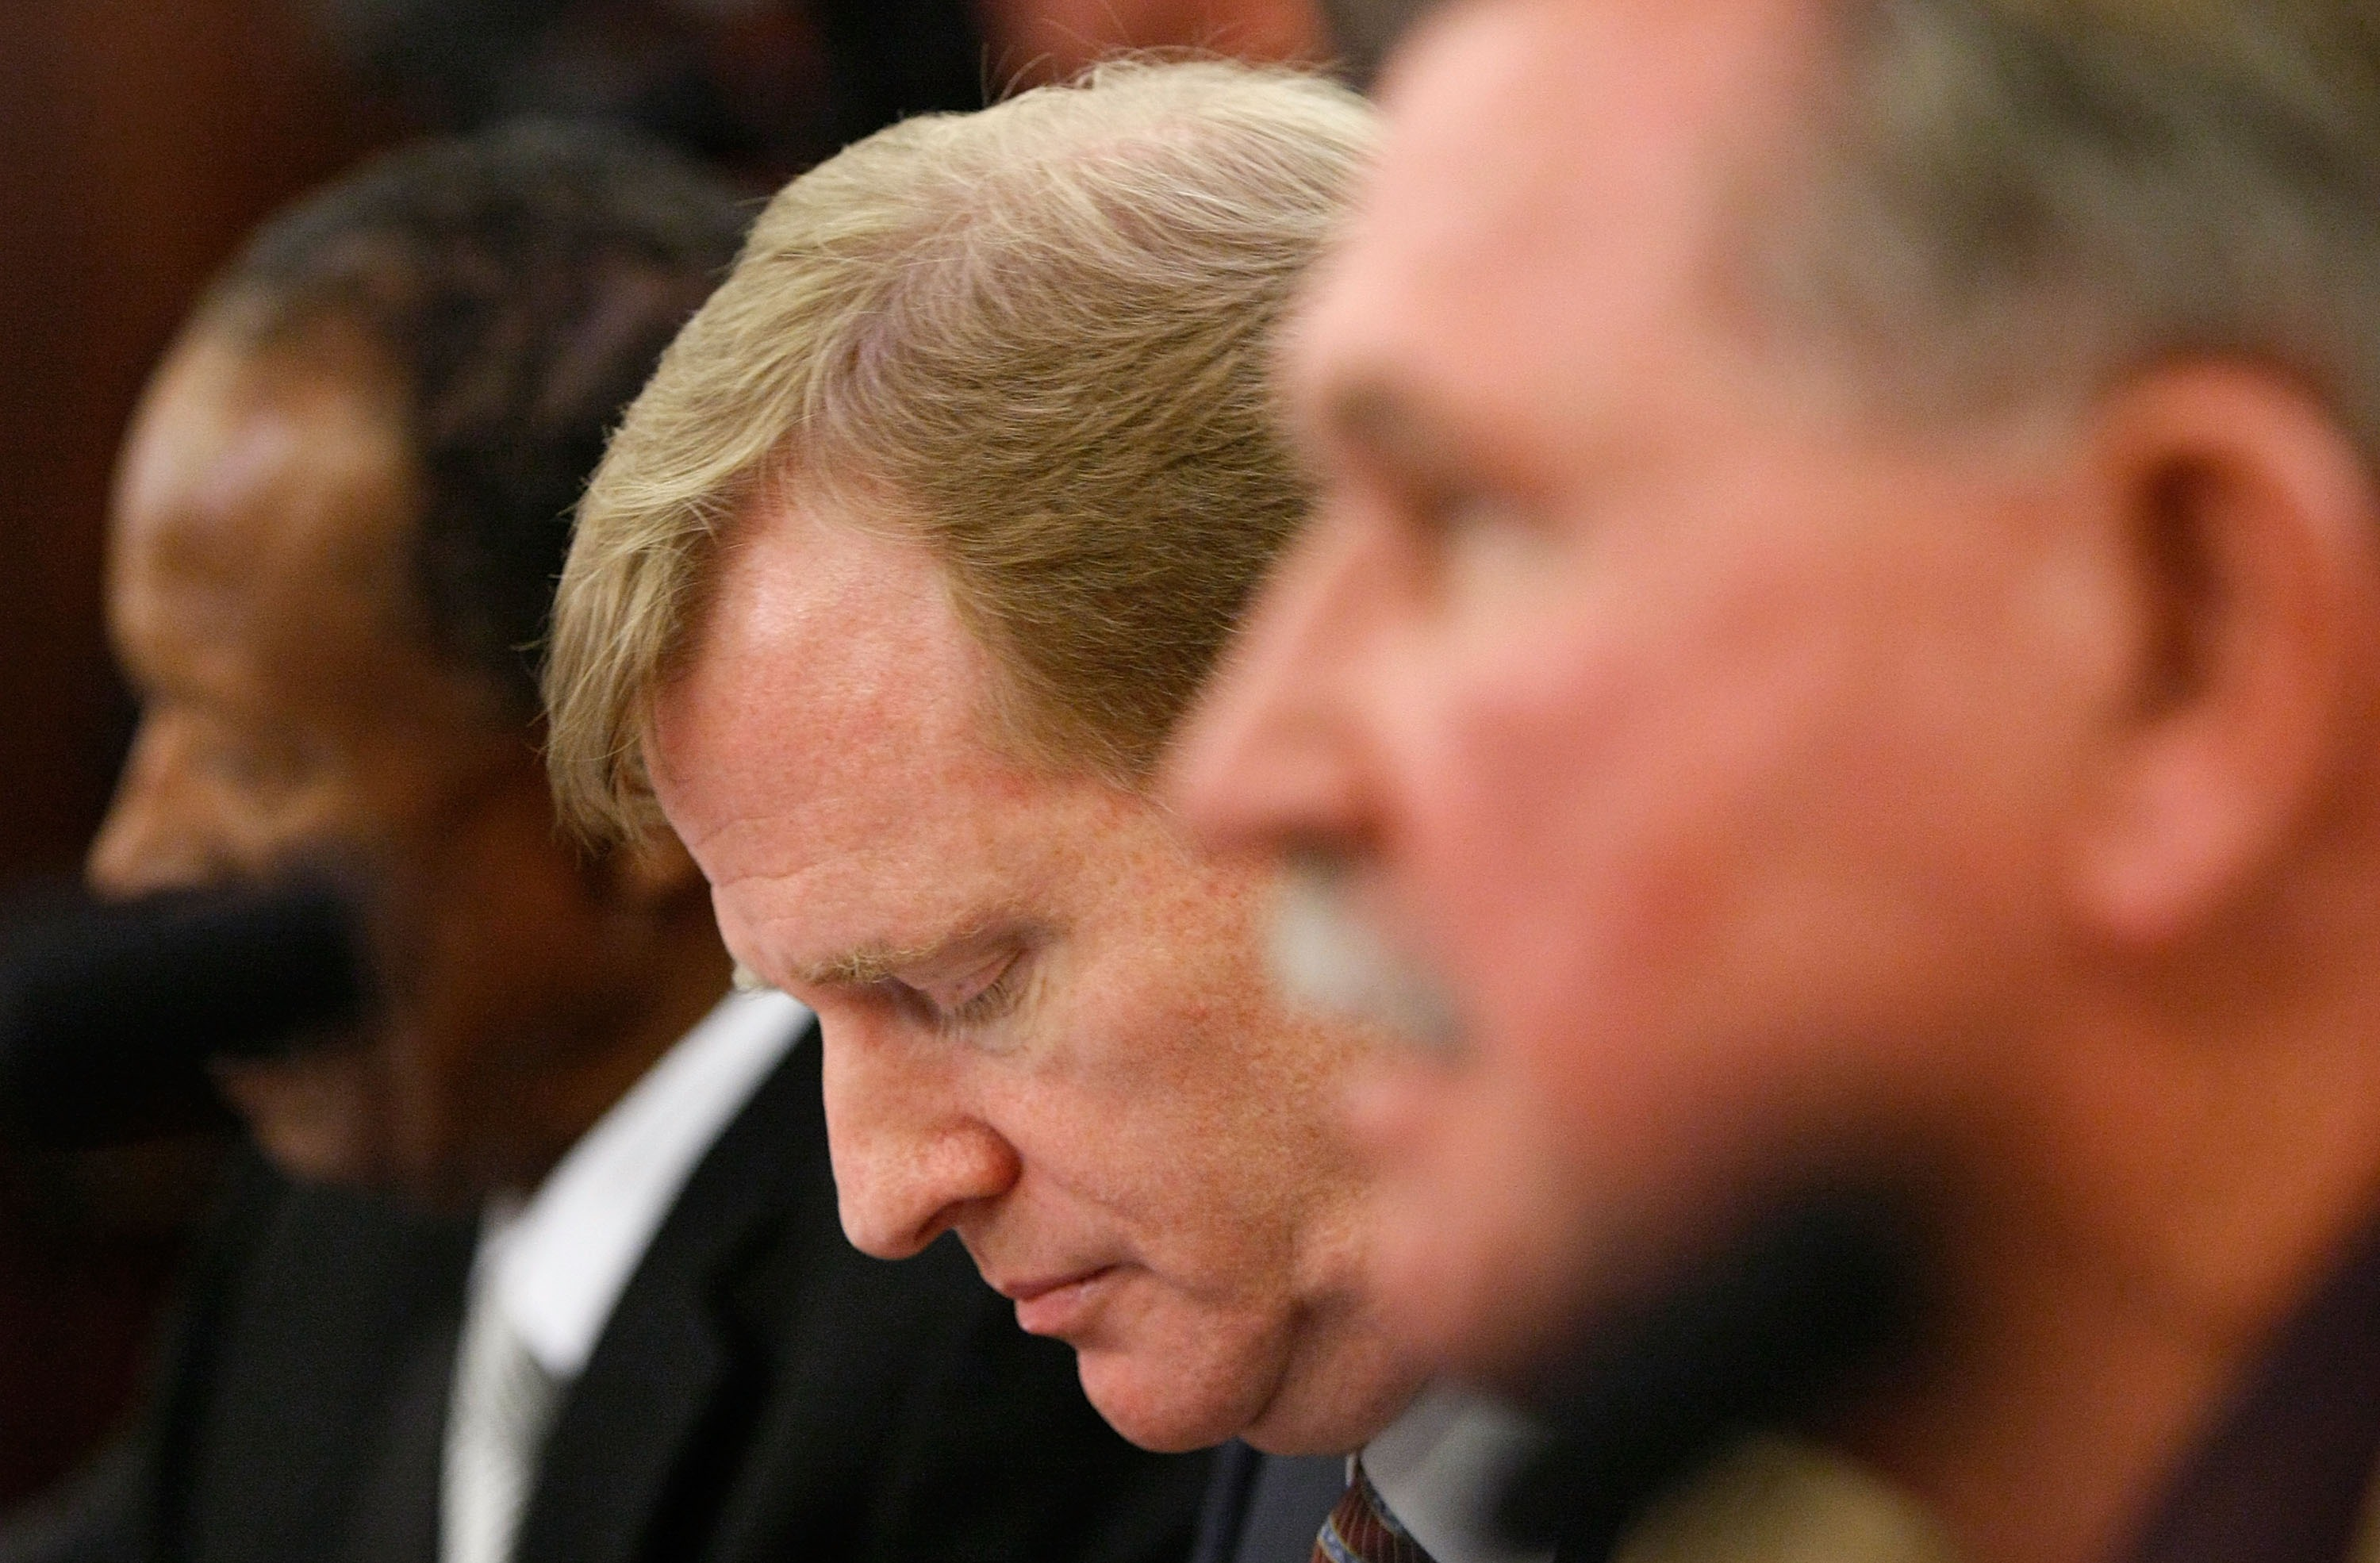 WASHINGTON - SEPTEMBER 18:  NFL Commissioner Roger Goodell (C) listens to testimony during a hearing of the Senate Commerce, Science and Transportation Committee with NFL Players Association Executive Director Gene Upshaw (L) and Pro Football Hall of Fame